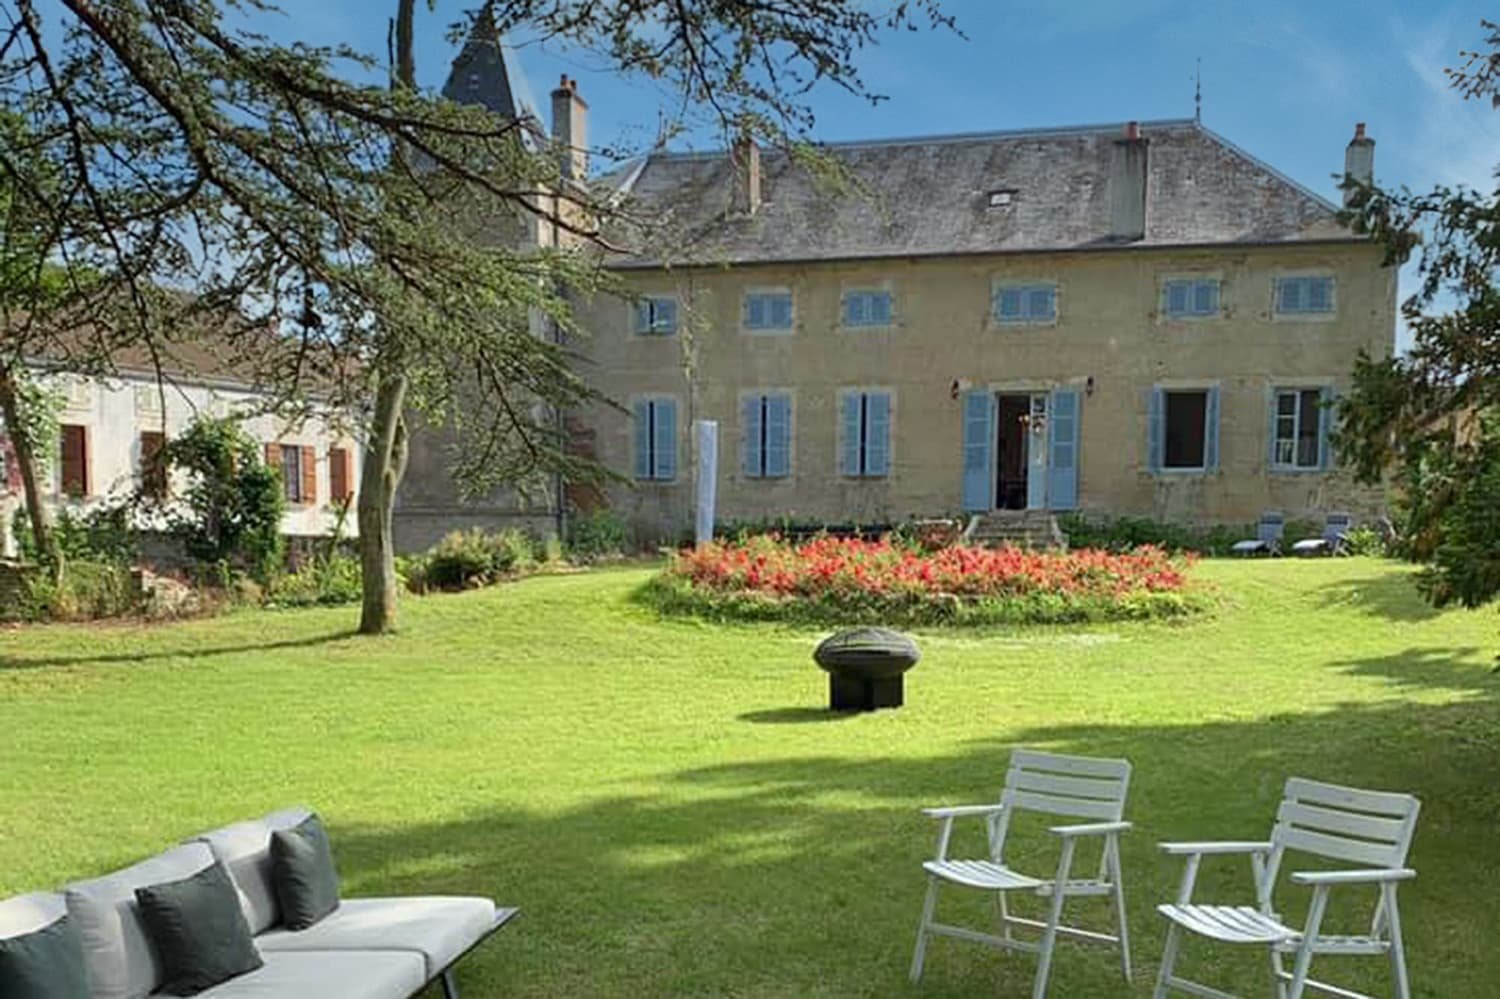 Self-catering accommodation in Bourgogne-Franche-Comté